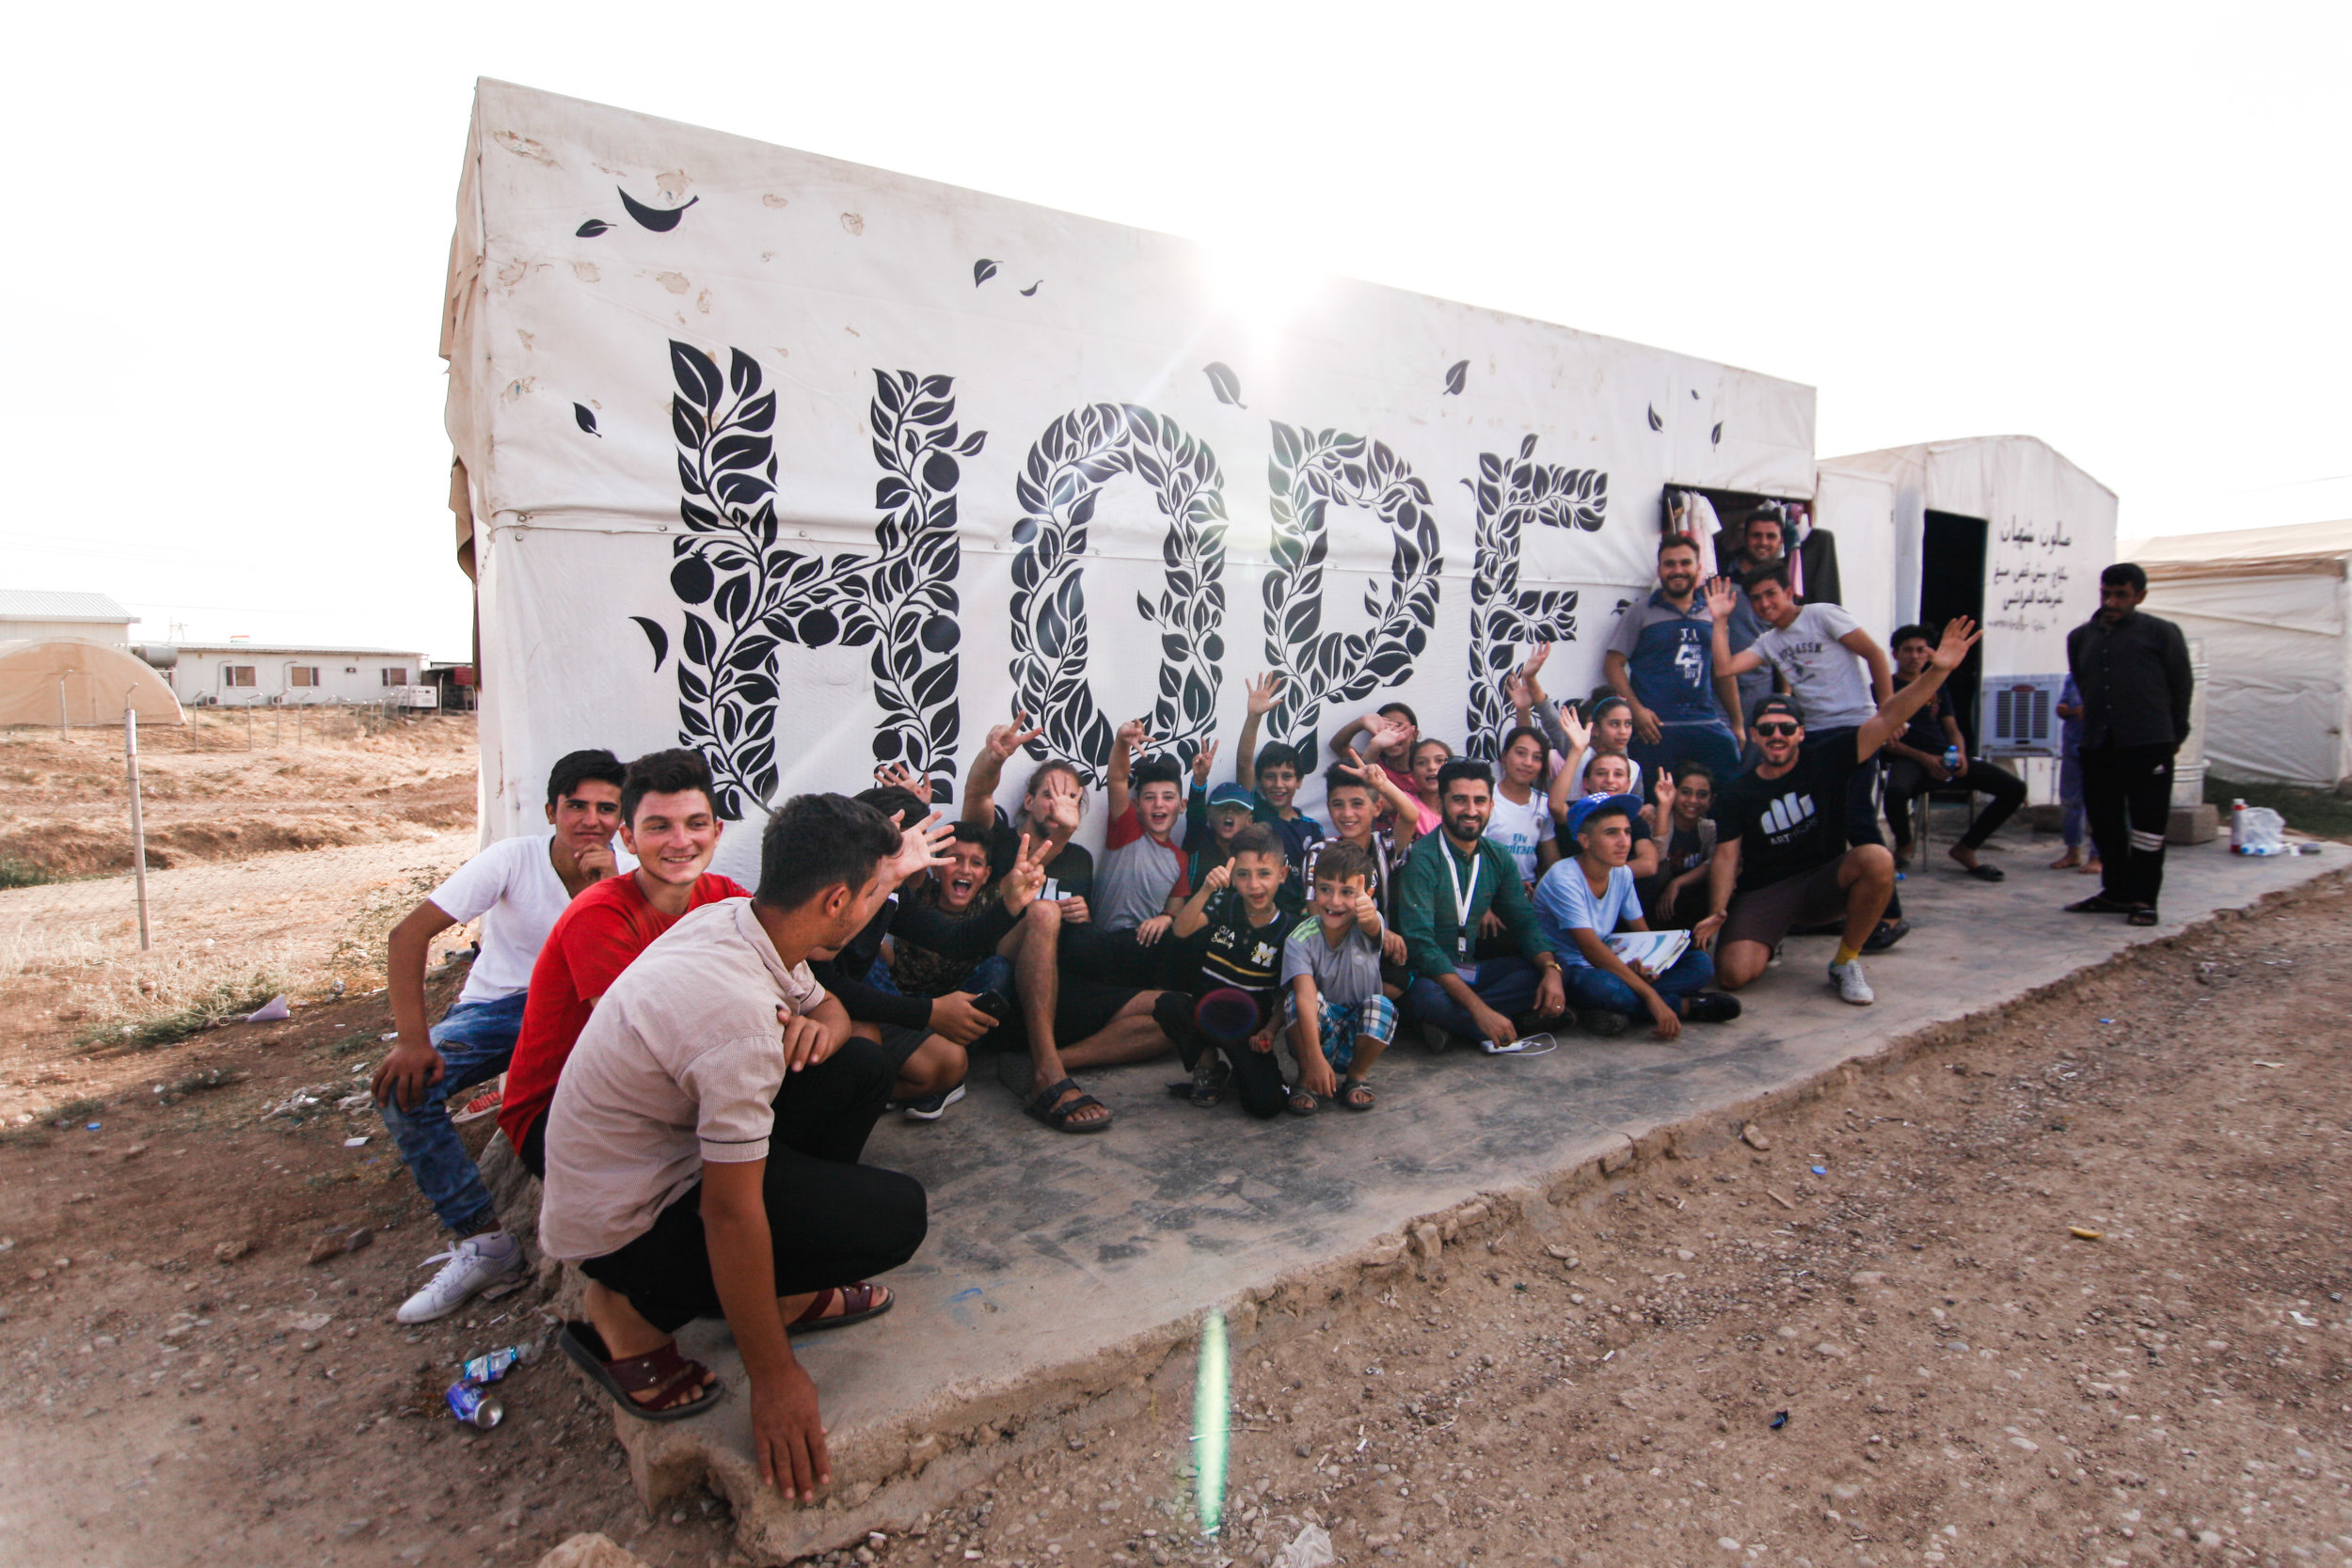 In Partnership with:  ARTHELPS  - Project:  REFUGEE CAMP MURAL, IRAQ